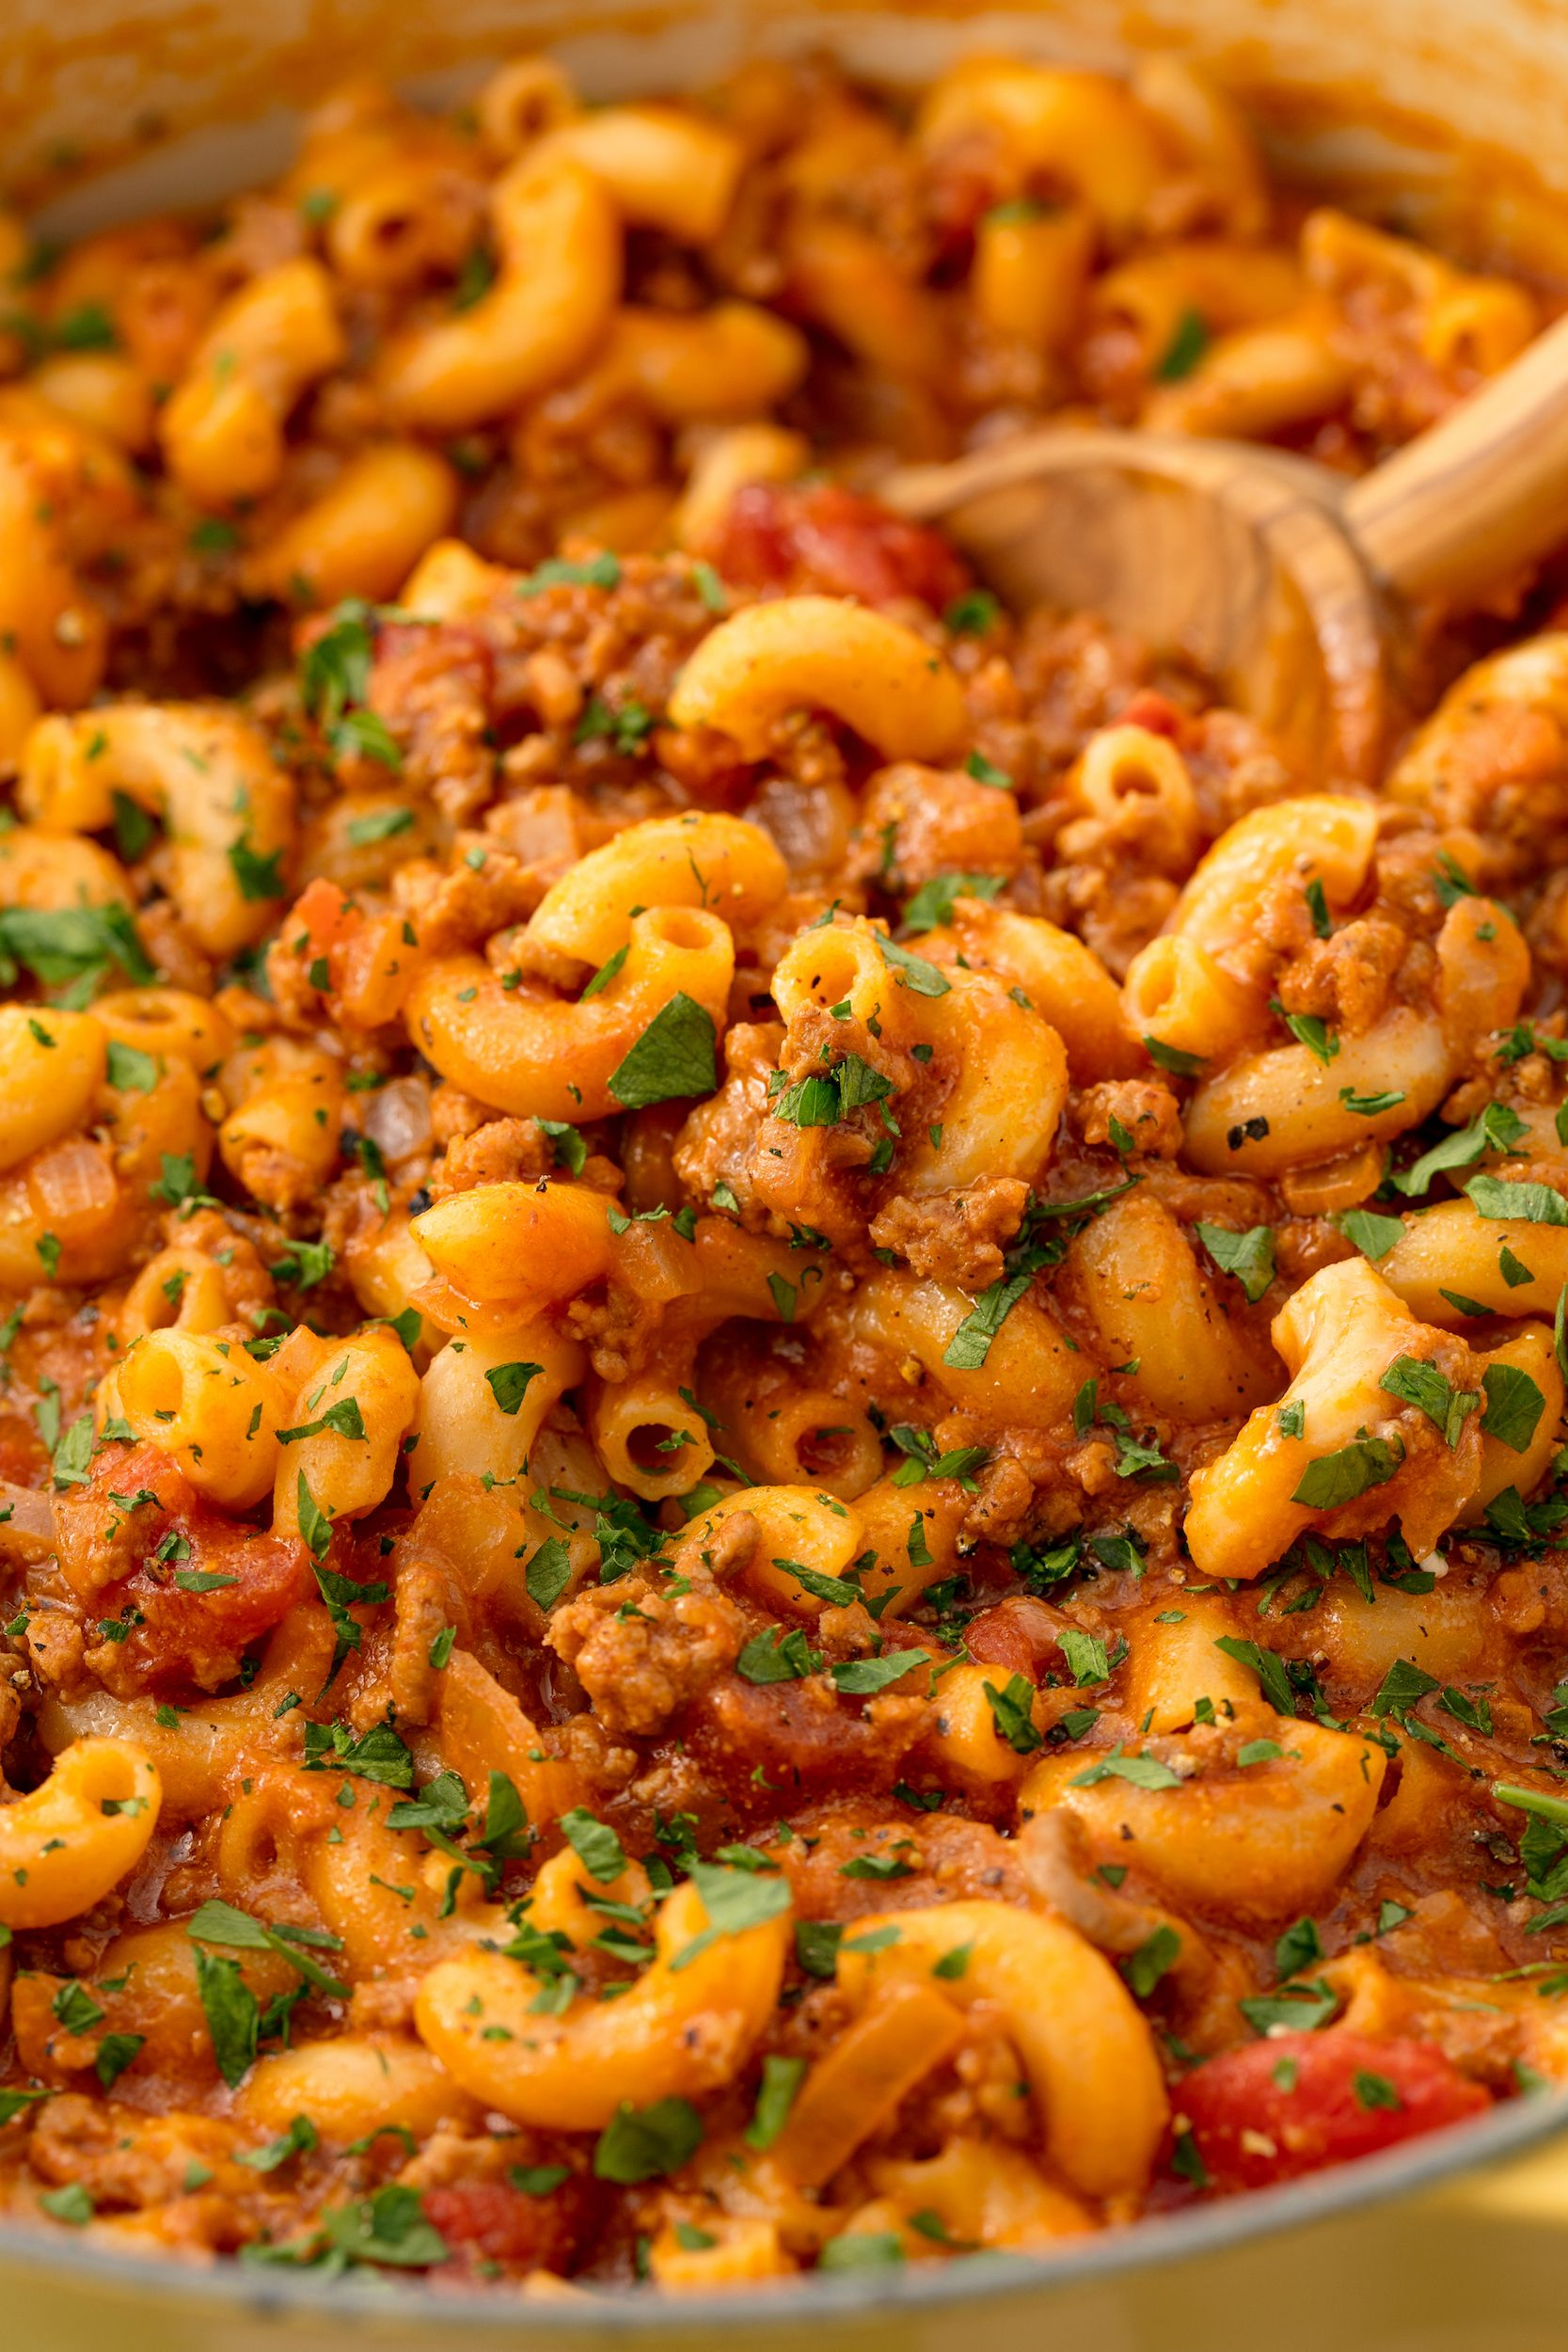 70 quick fall dinner recipes easy ideas for autumn dinners 70 quick fall dinner recipes easy ideas for autumn dinners delish forumfinder Images